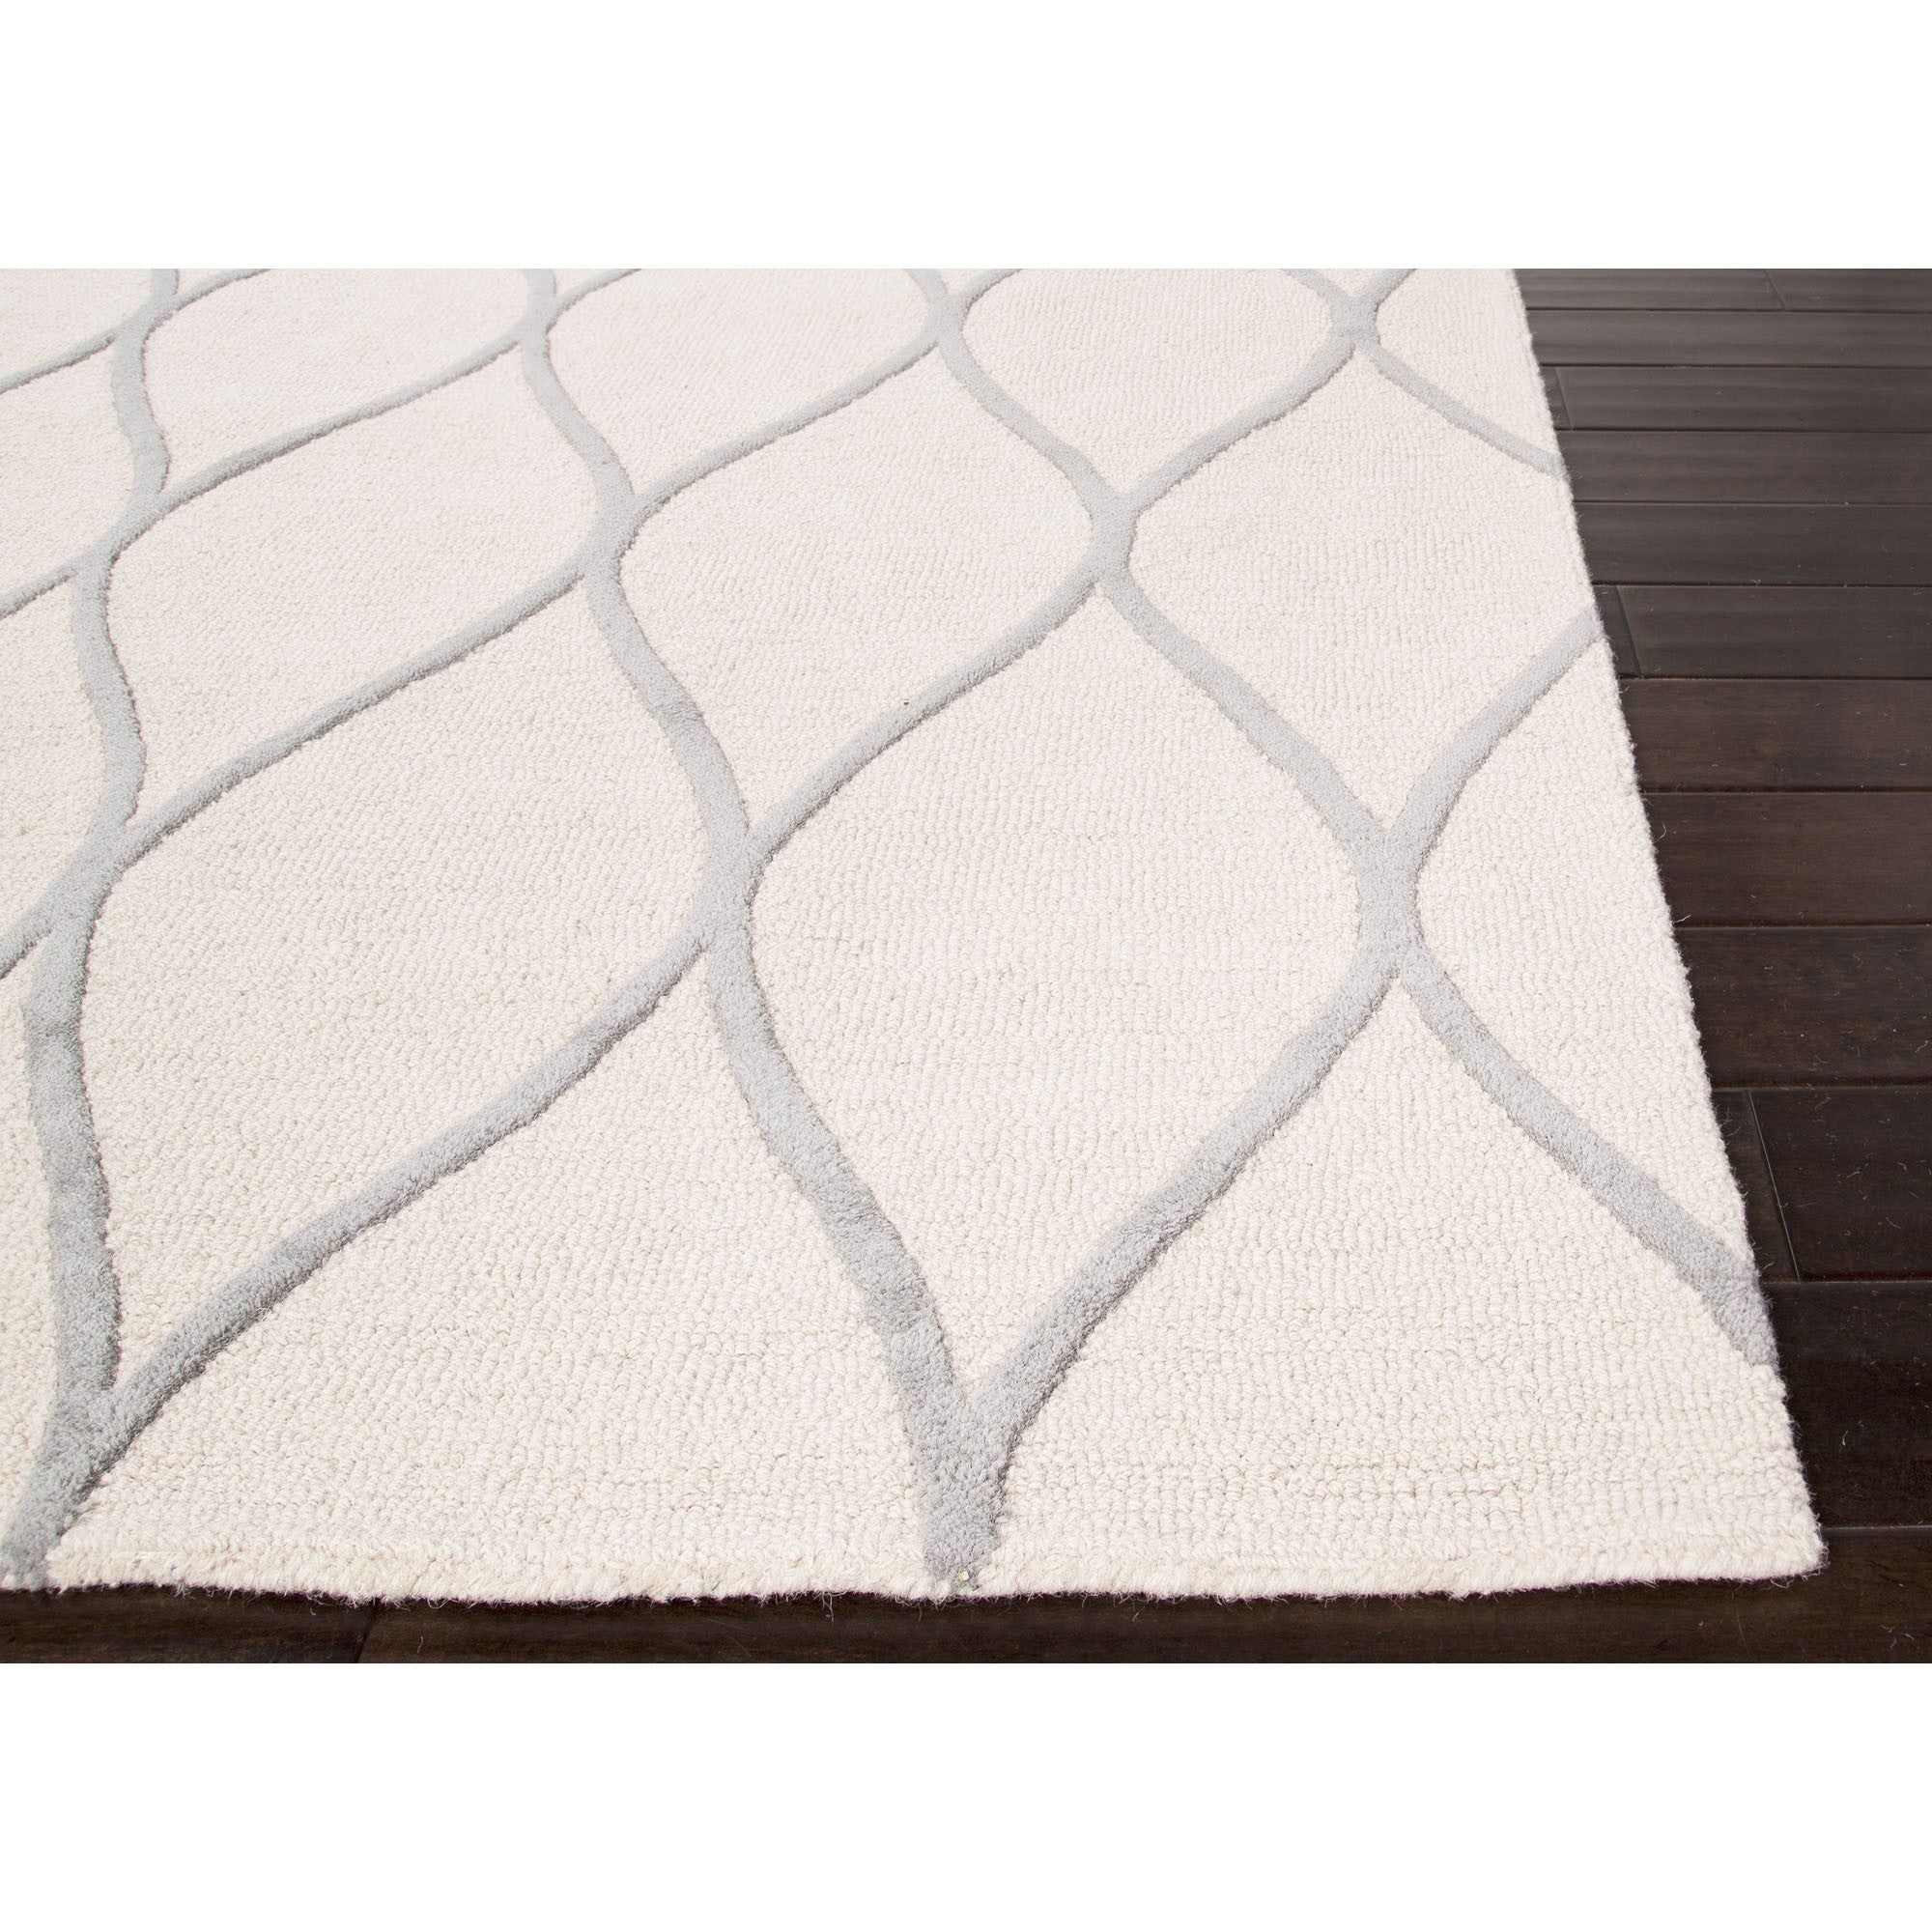 Jaipur rugs modern geometric pattern ivory gray wool area for Contemporary wool area rugs